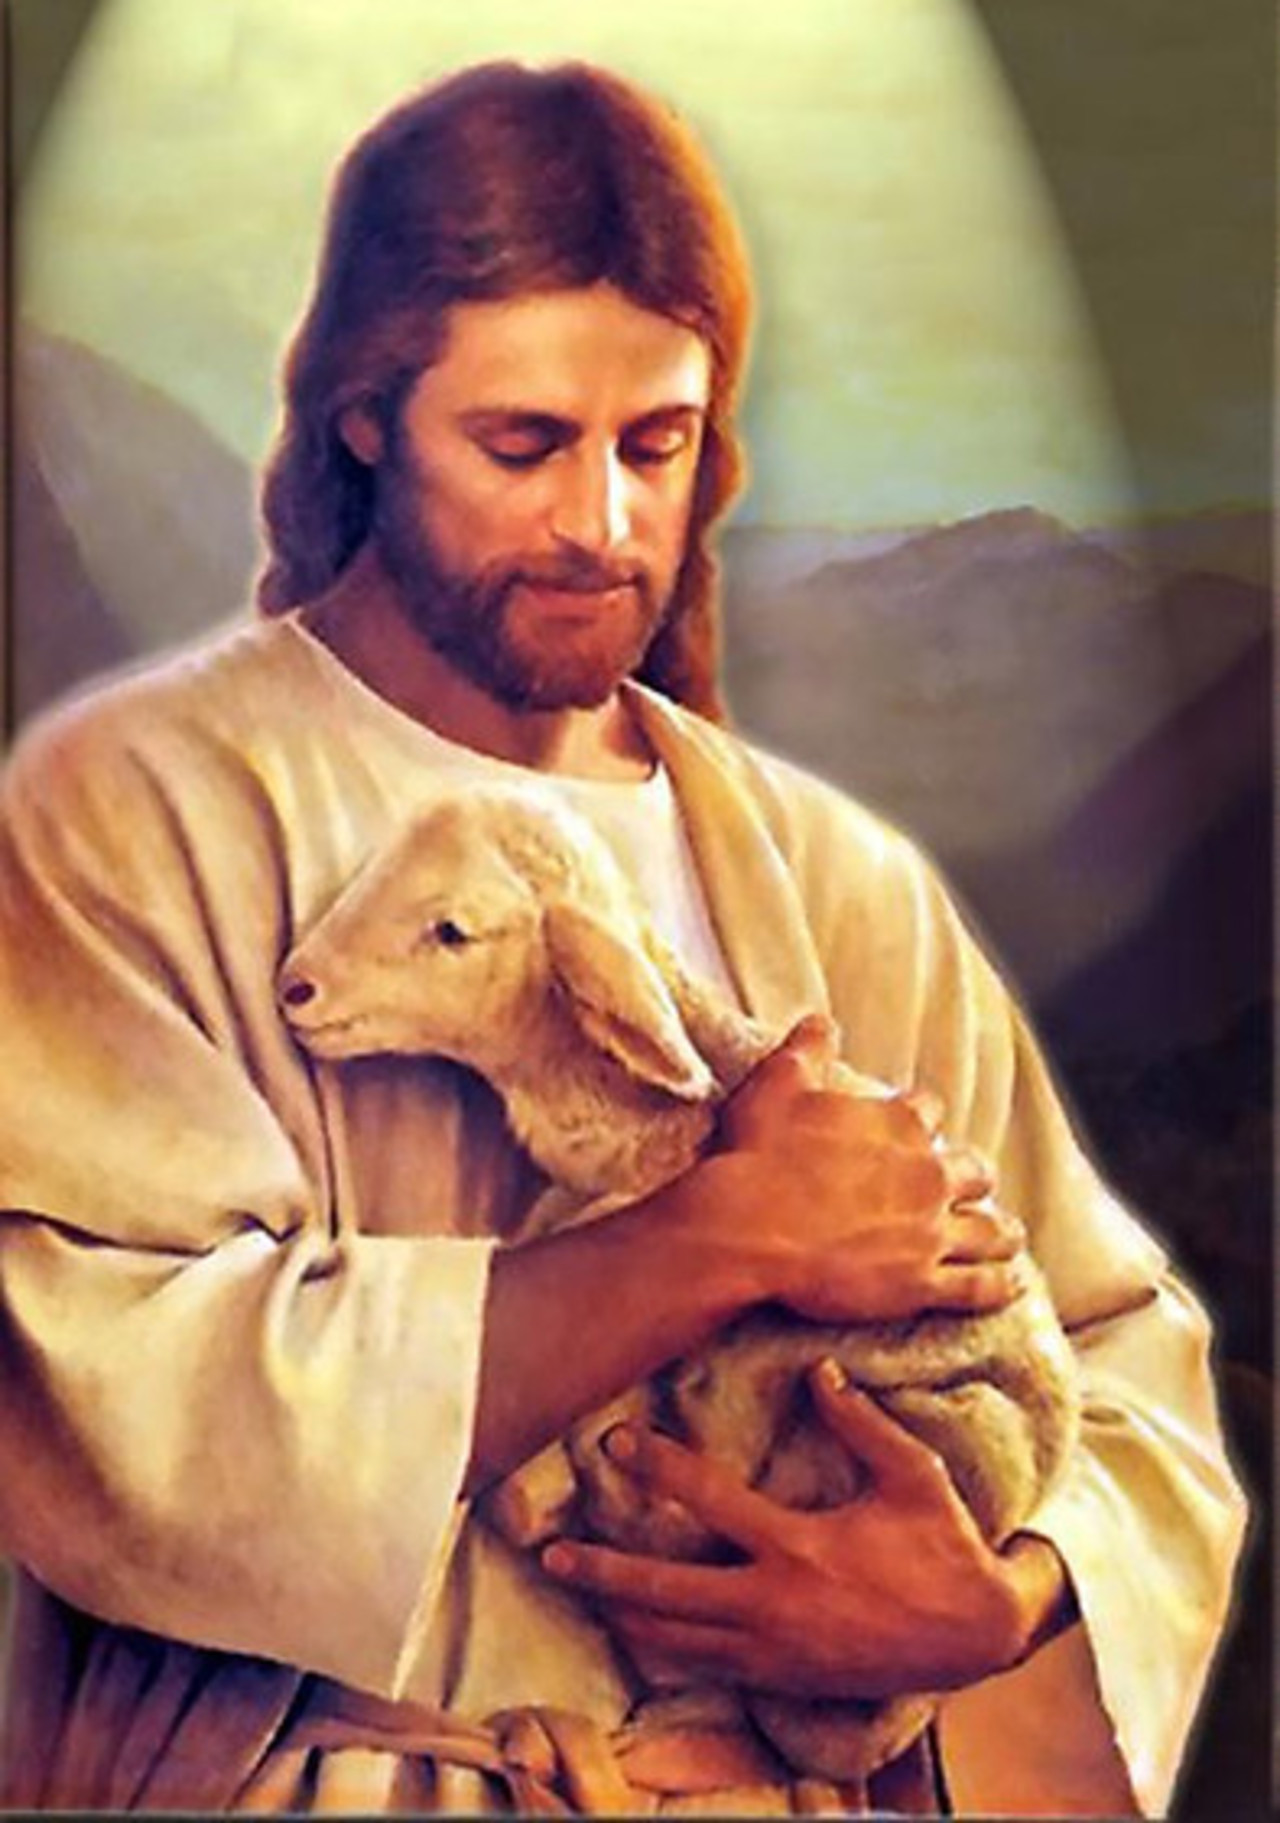 Jesus with a Sheep in Hands 39.75 Kb